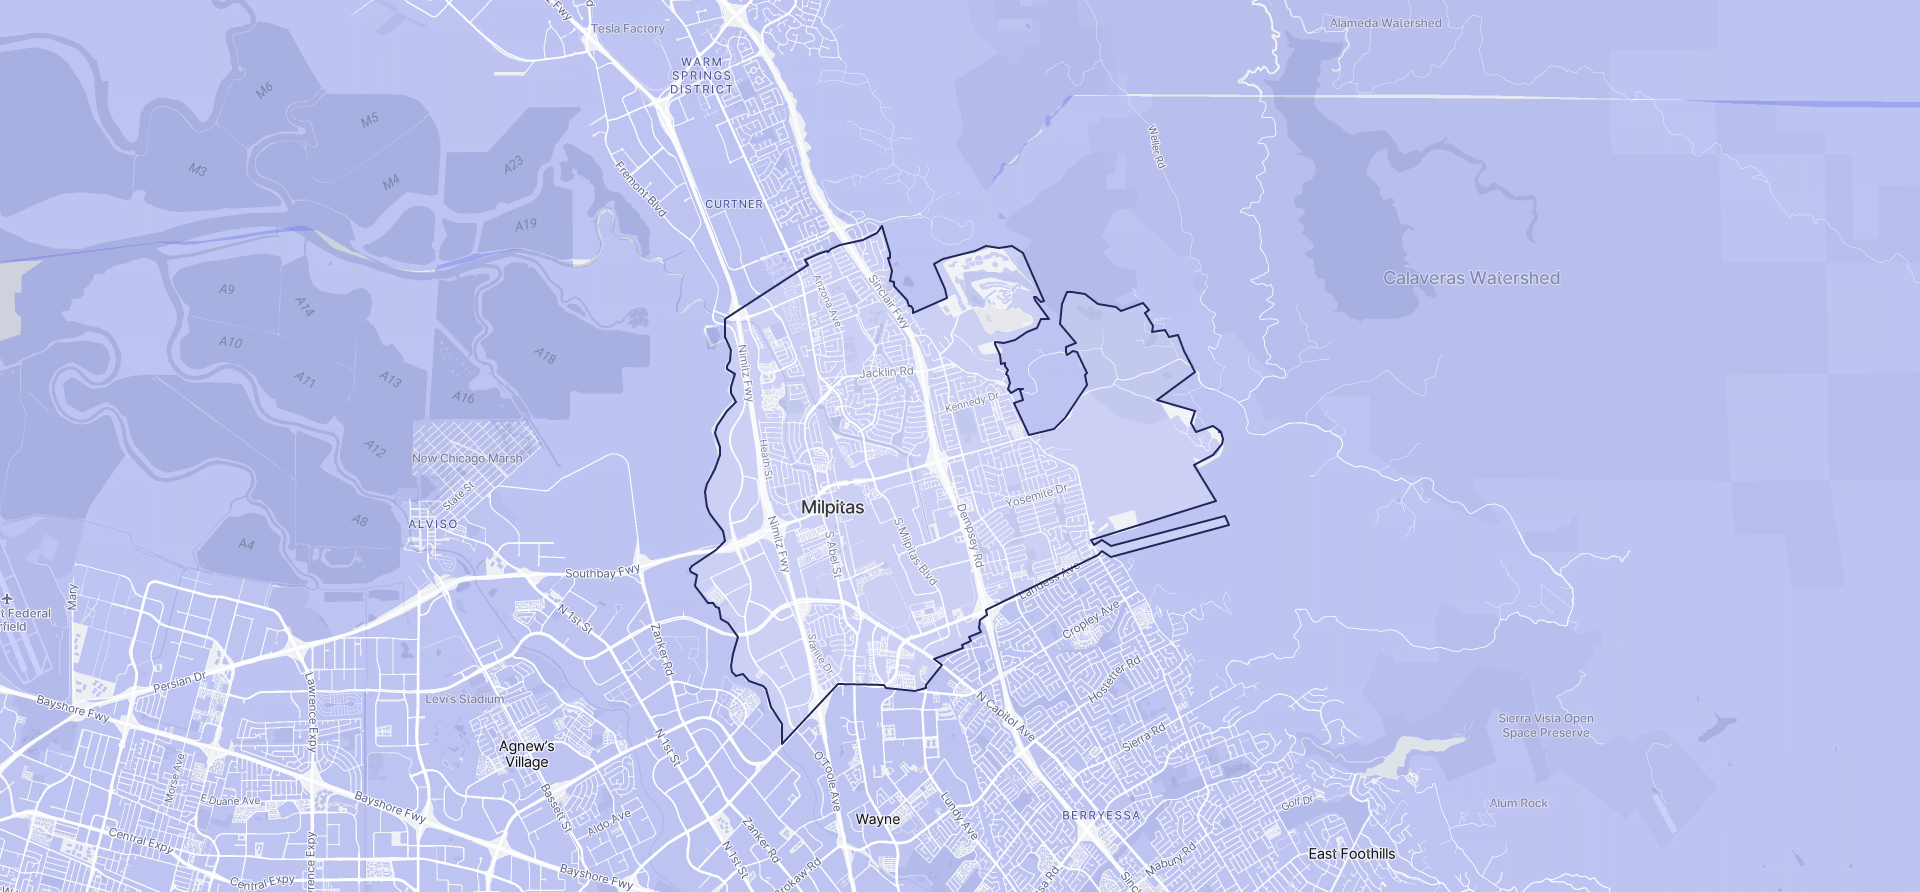 Image of Milpitas boundaries on a map.